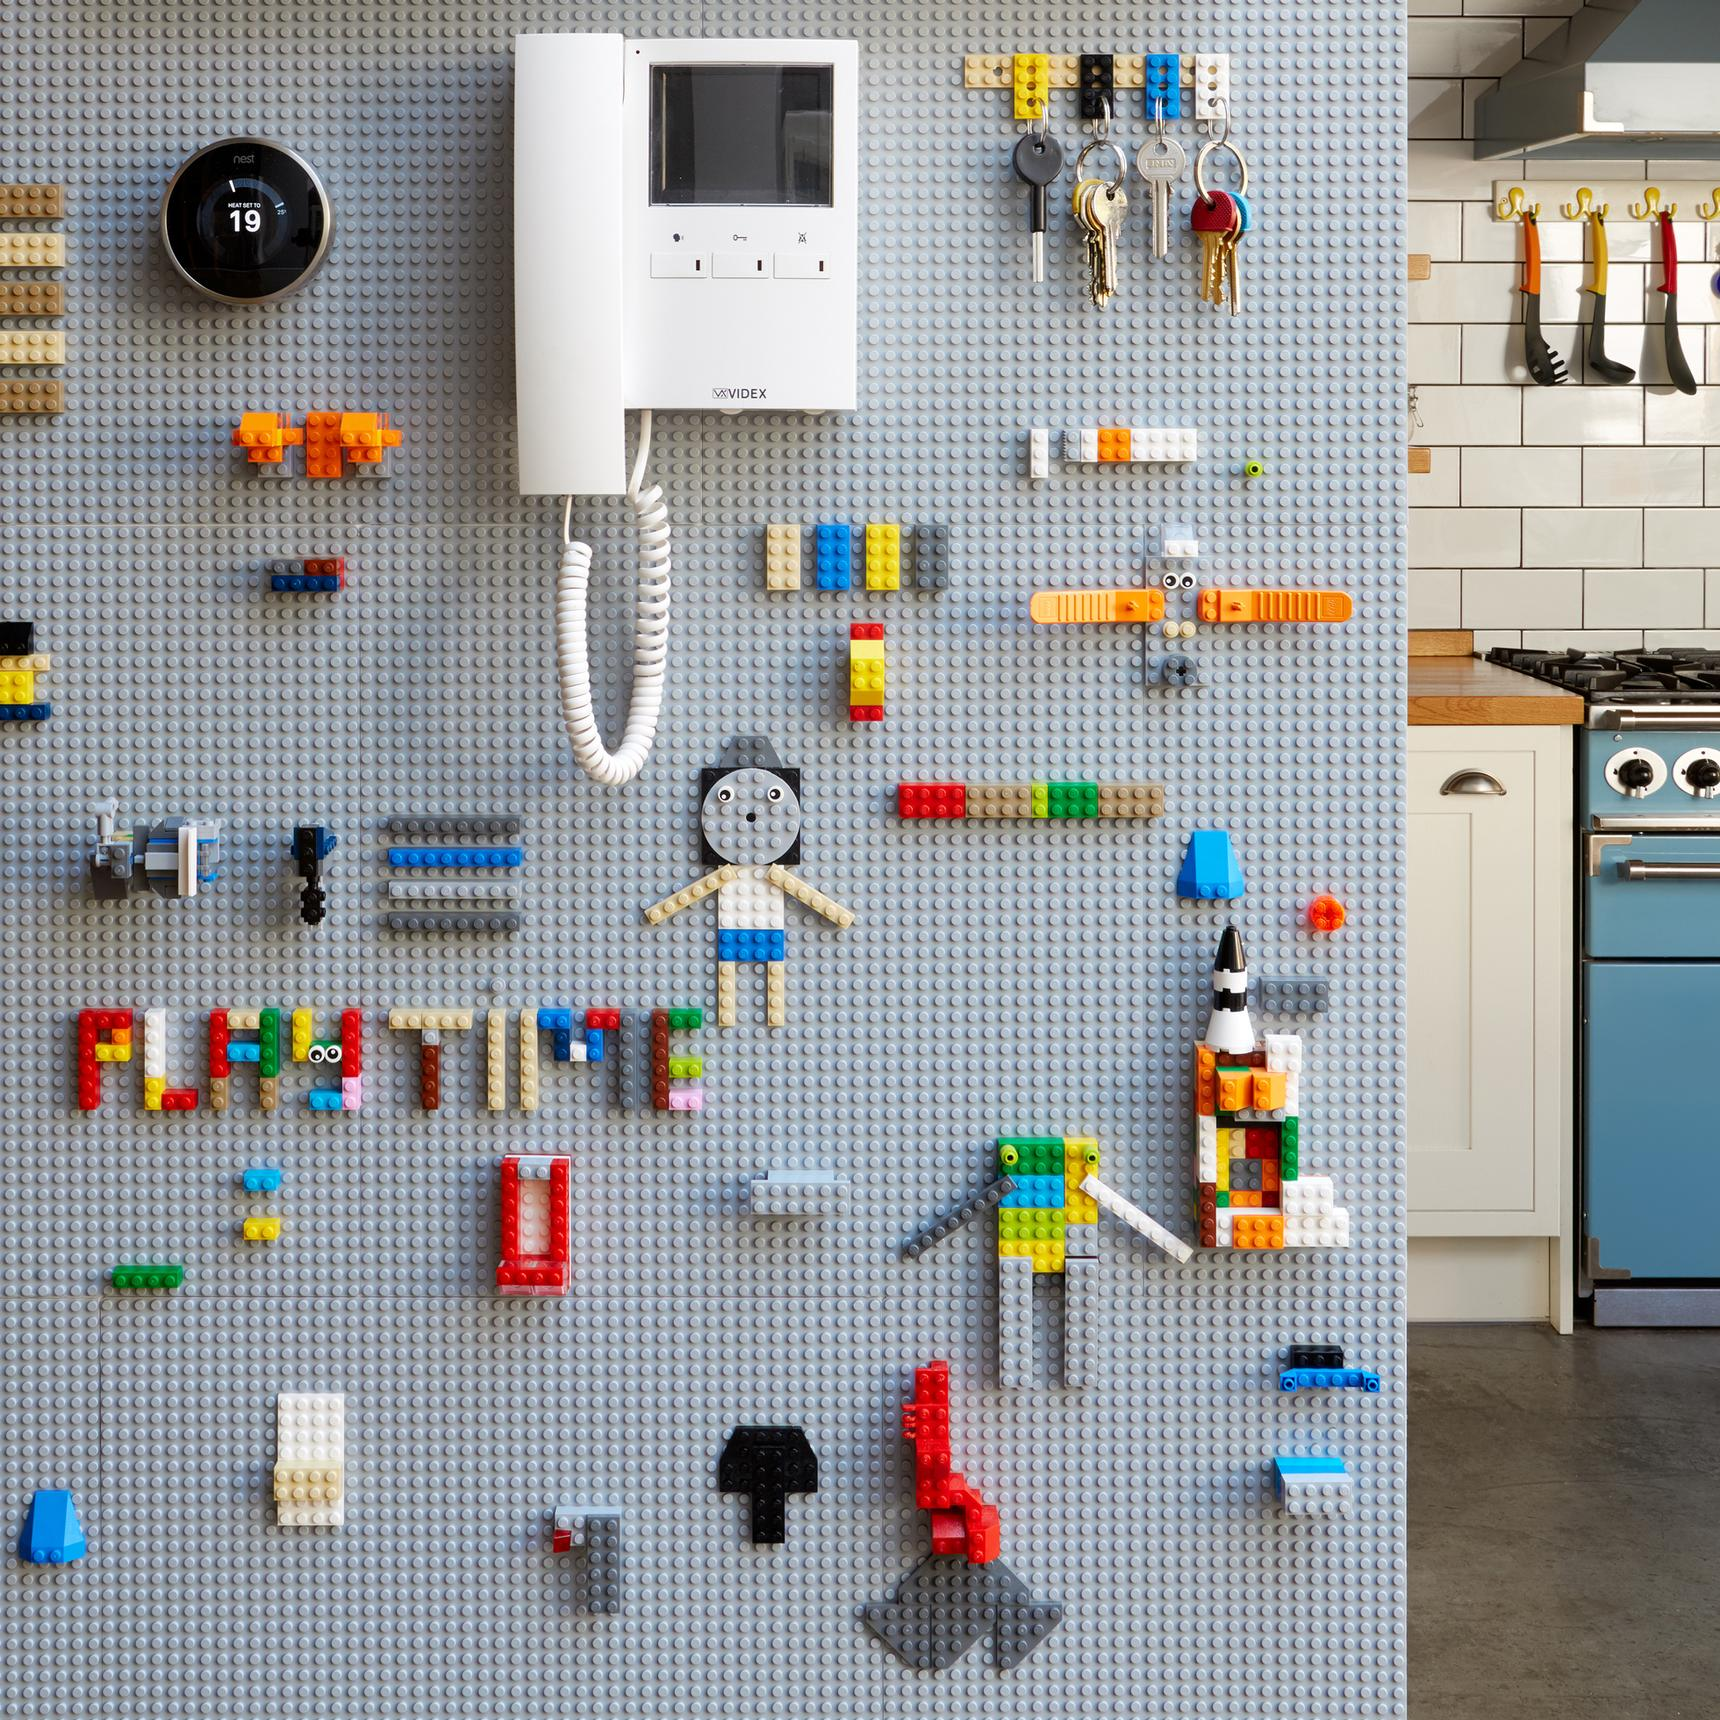 Fun home wall with Lego baseplates